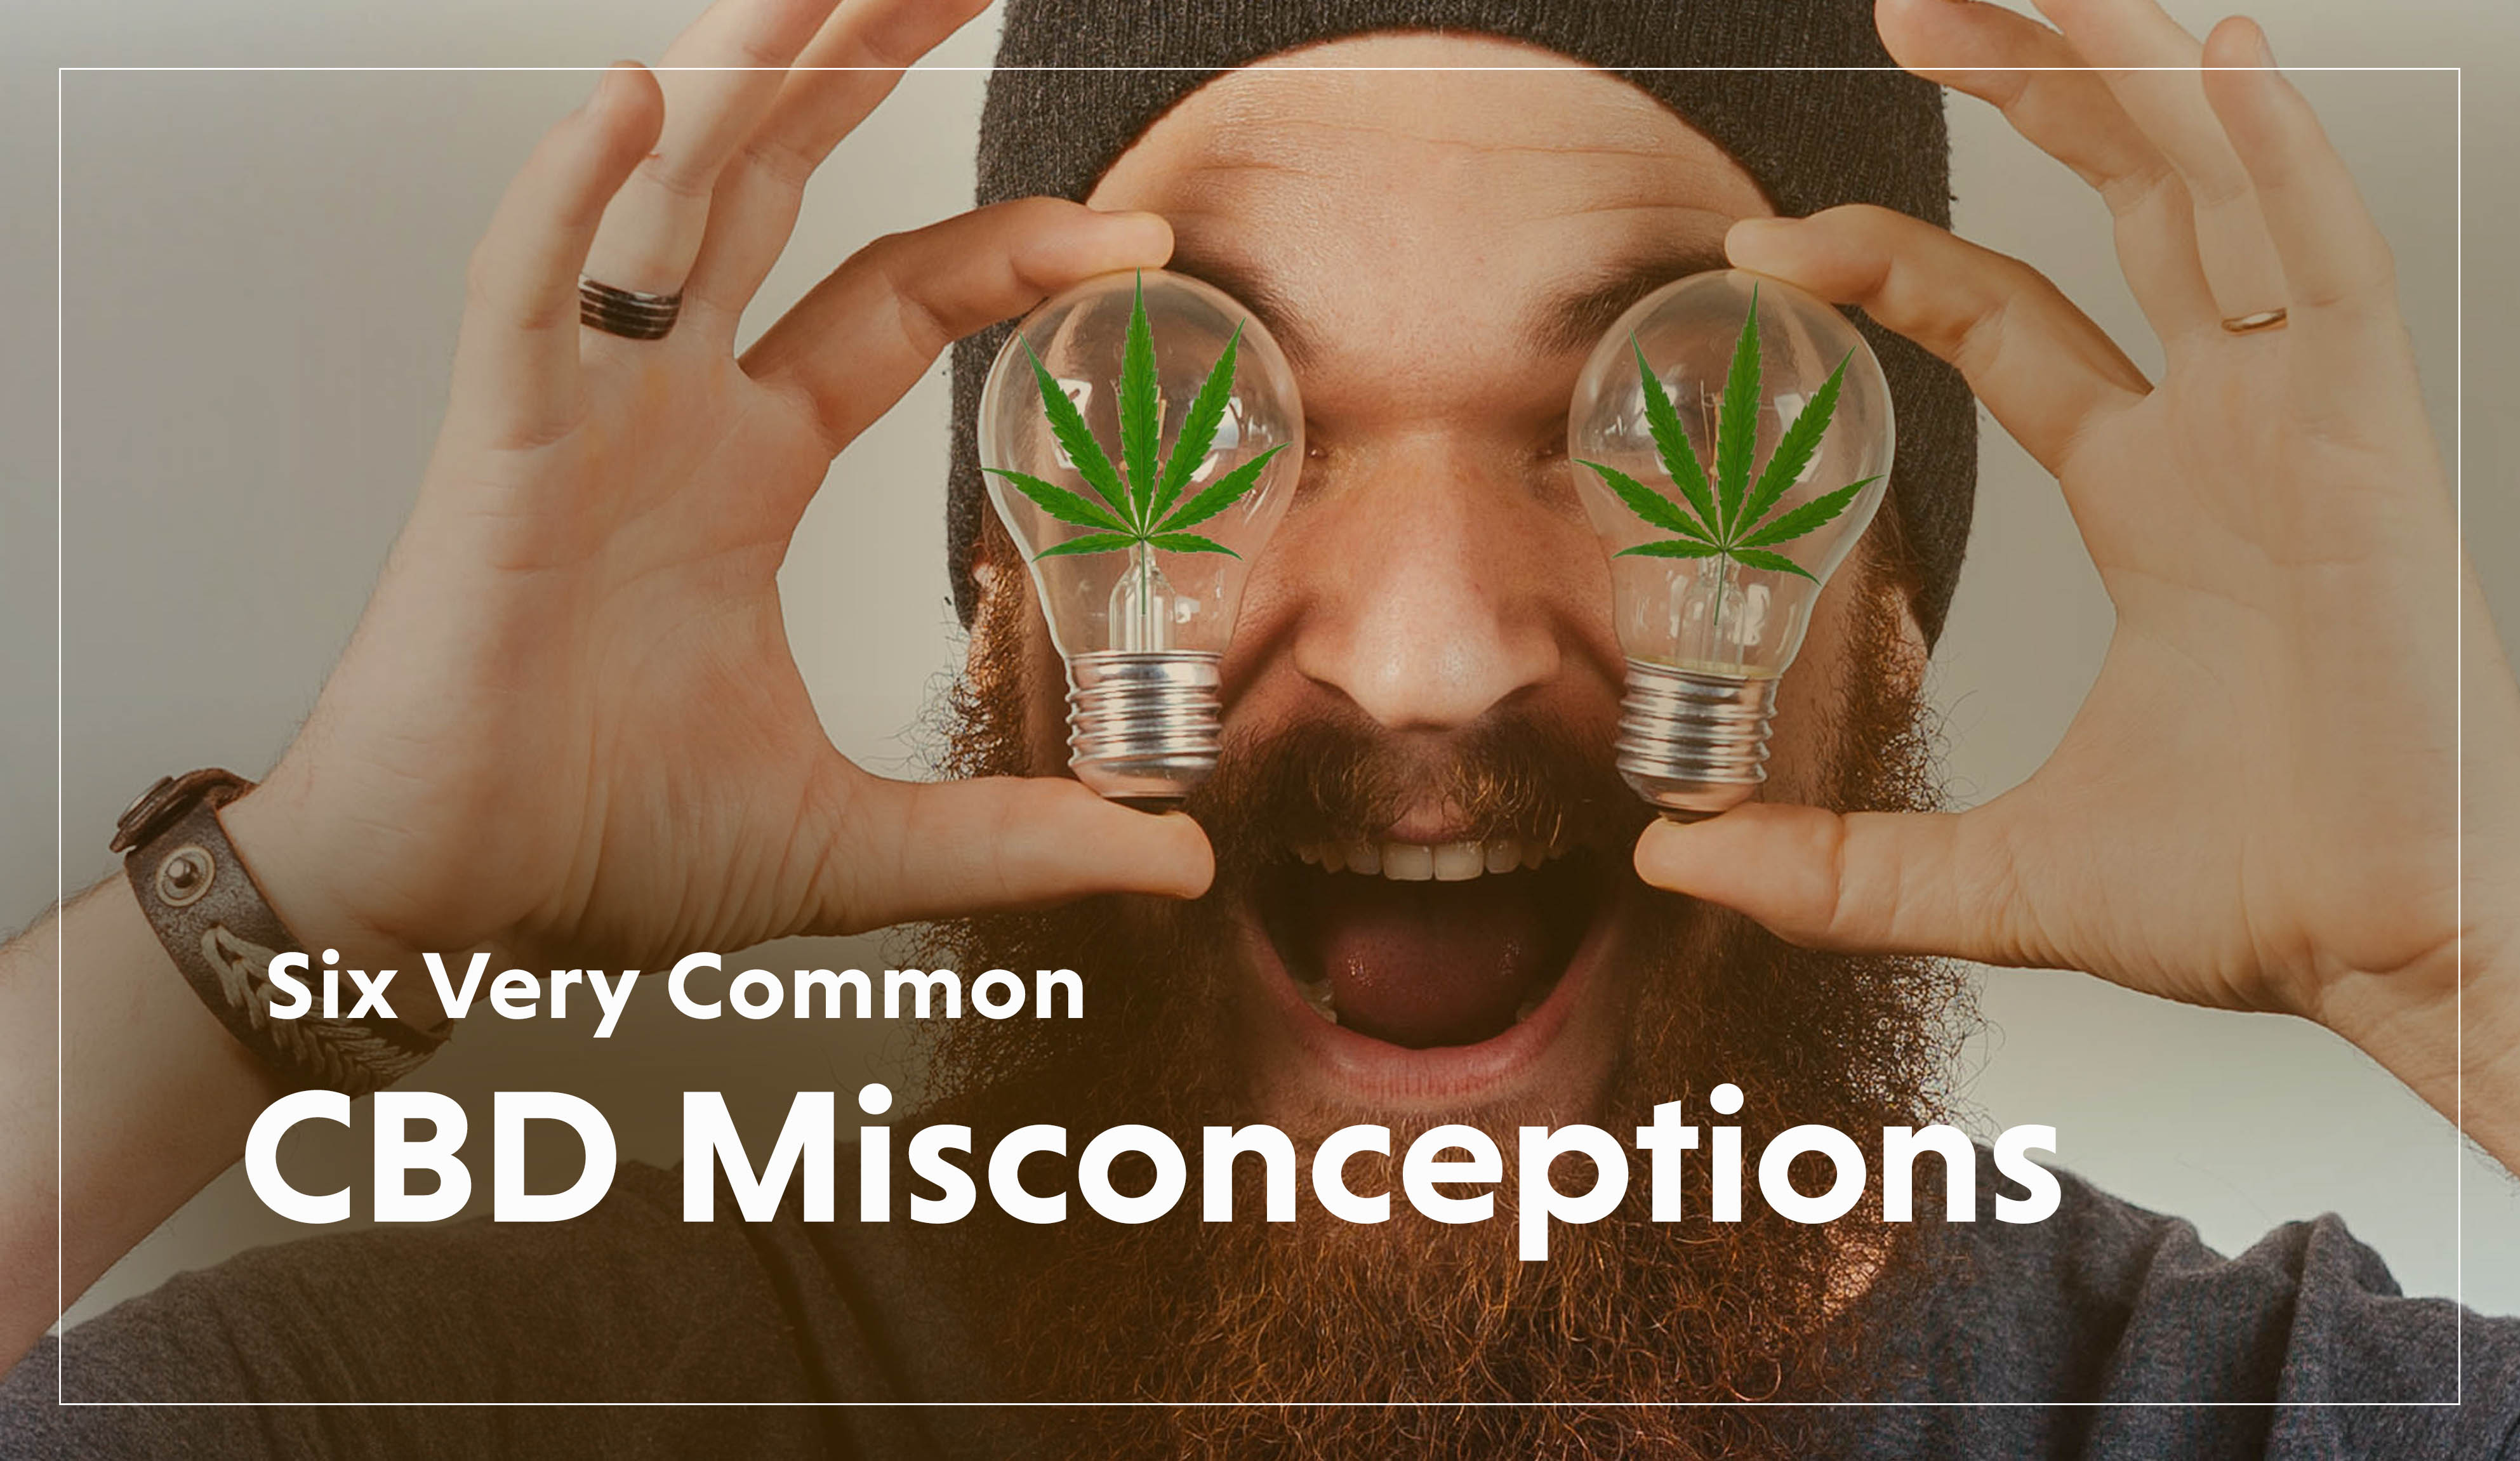 CBD Misconceptions